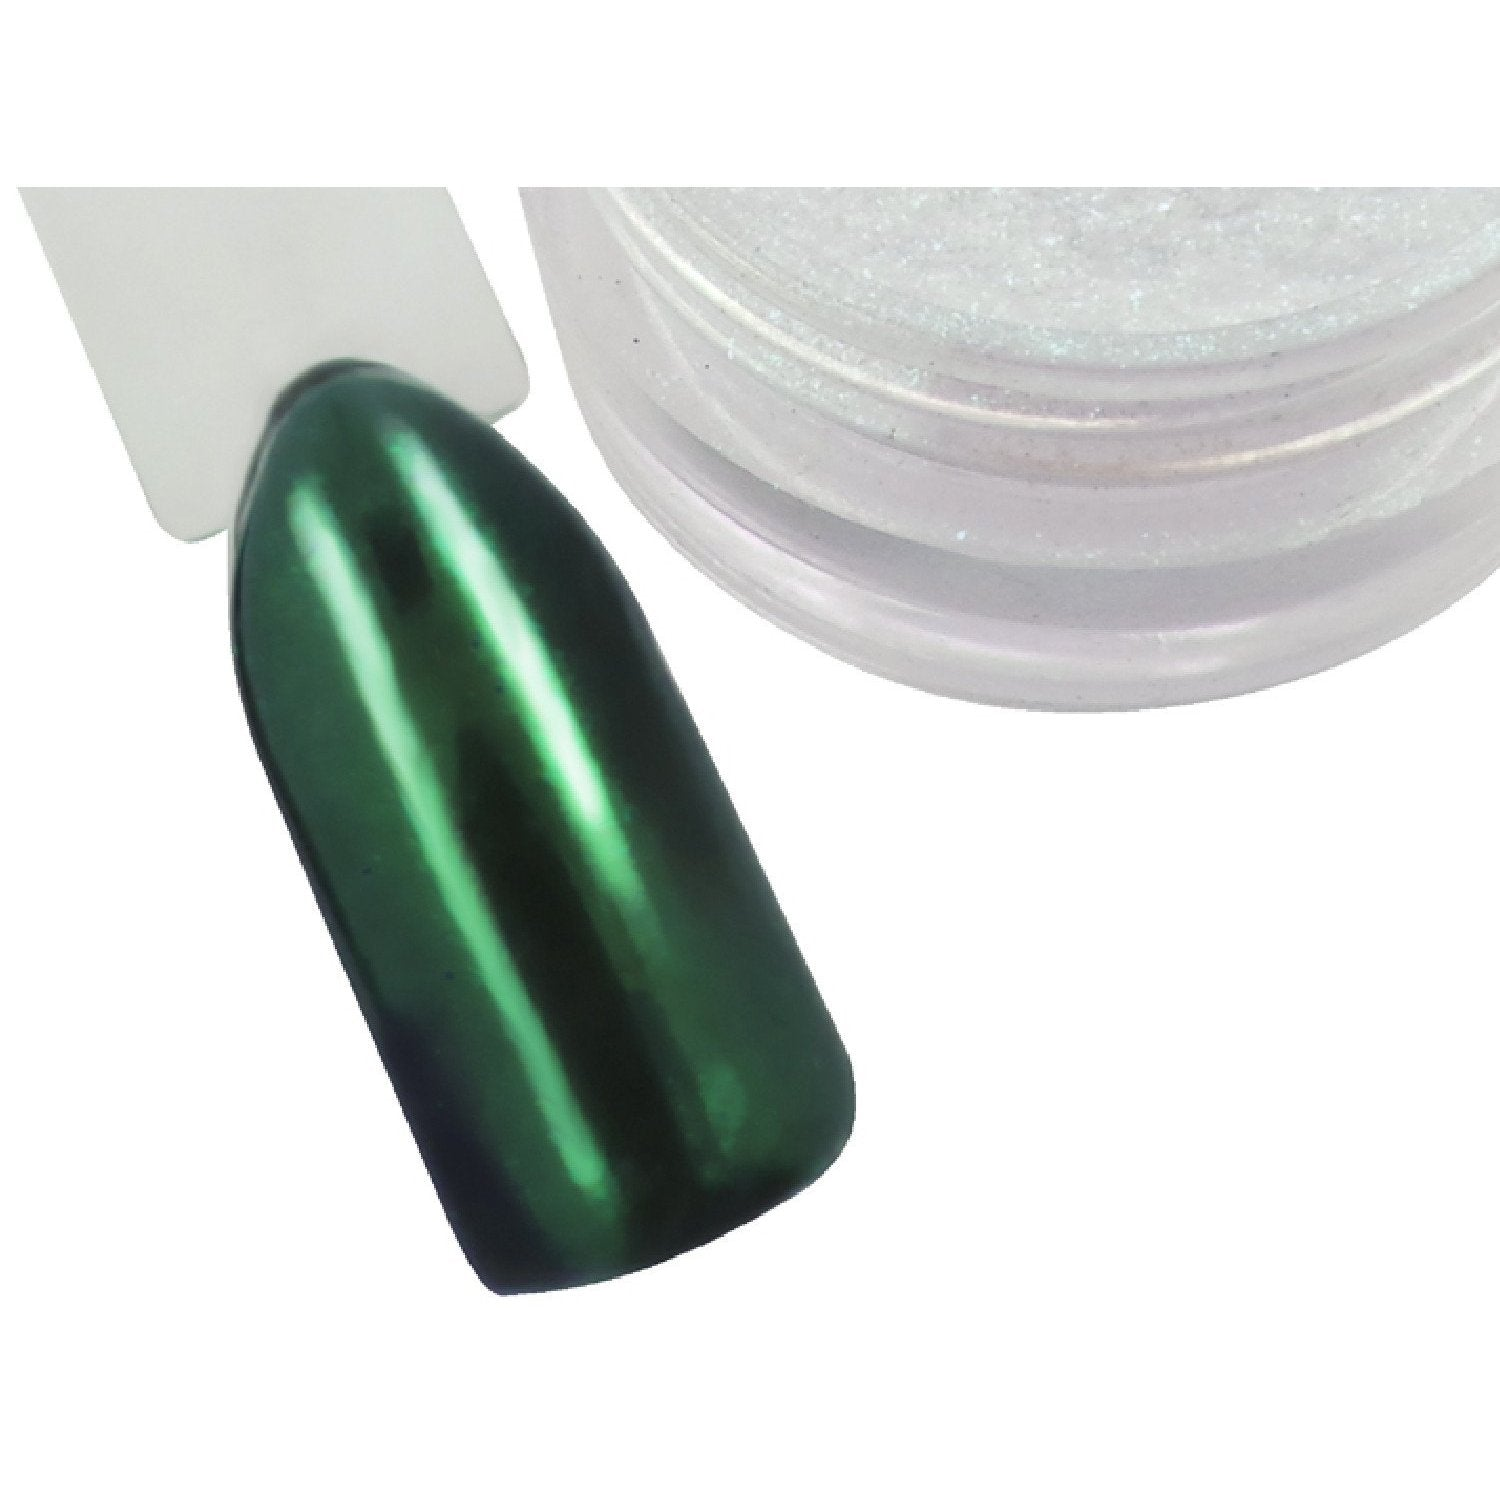 Emerald Chrome Pigment Powder - Naio Nails - 1